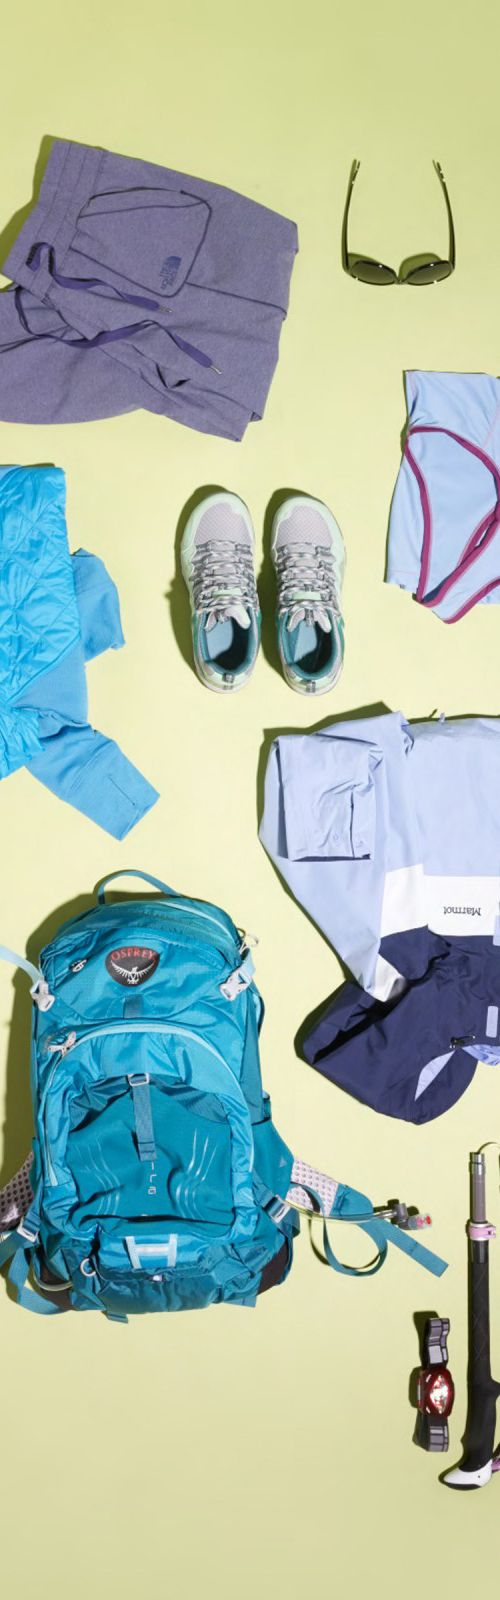 """Check it! Outdoor's lineup of """"Best Women's Hiking Gear"""" in 2016."""